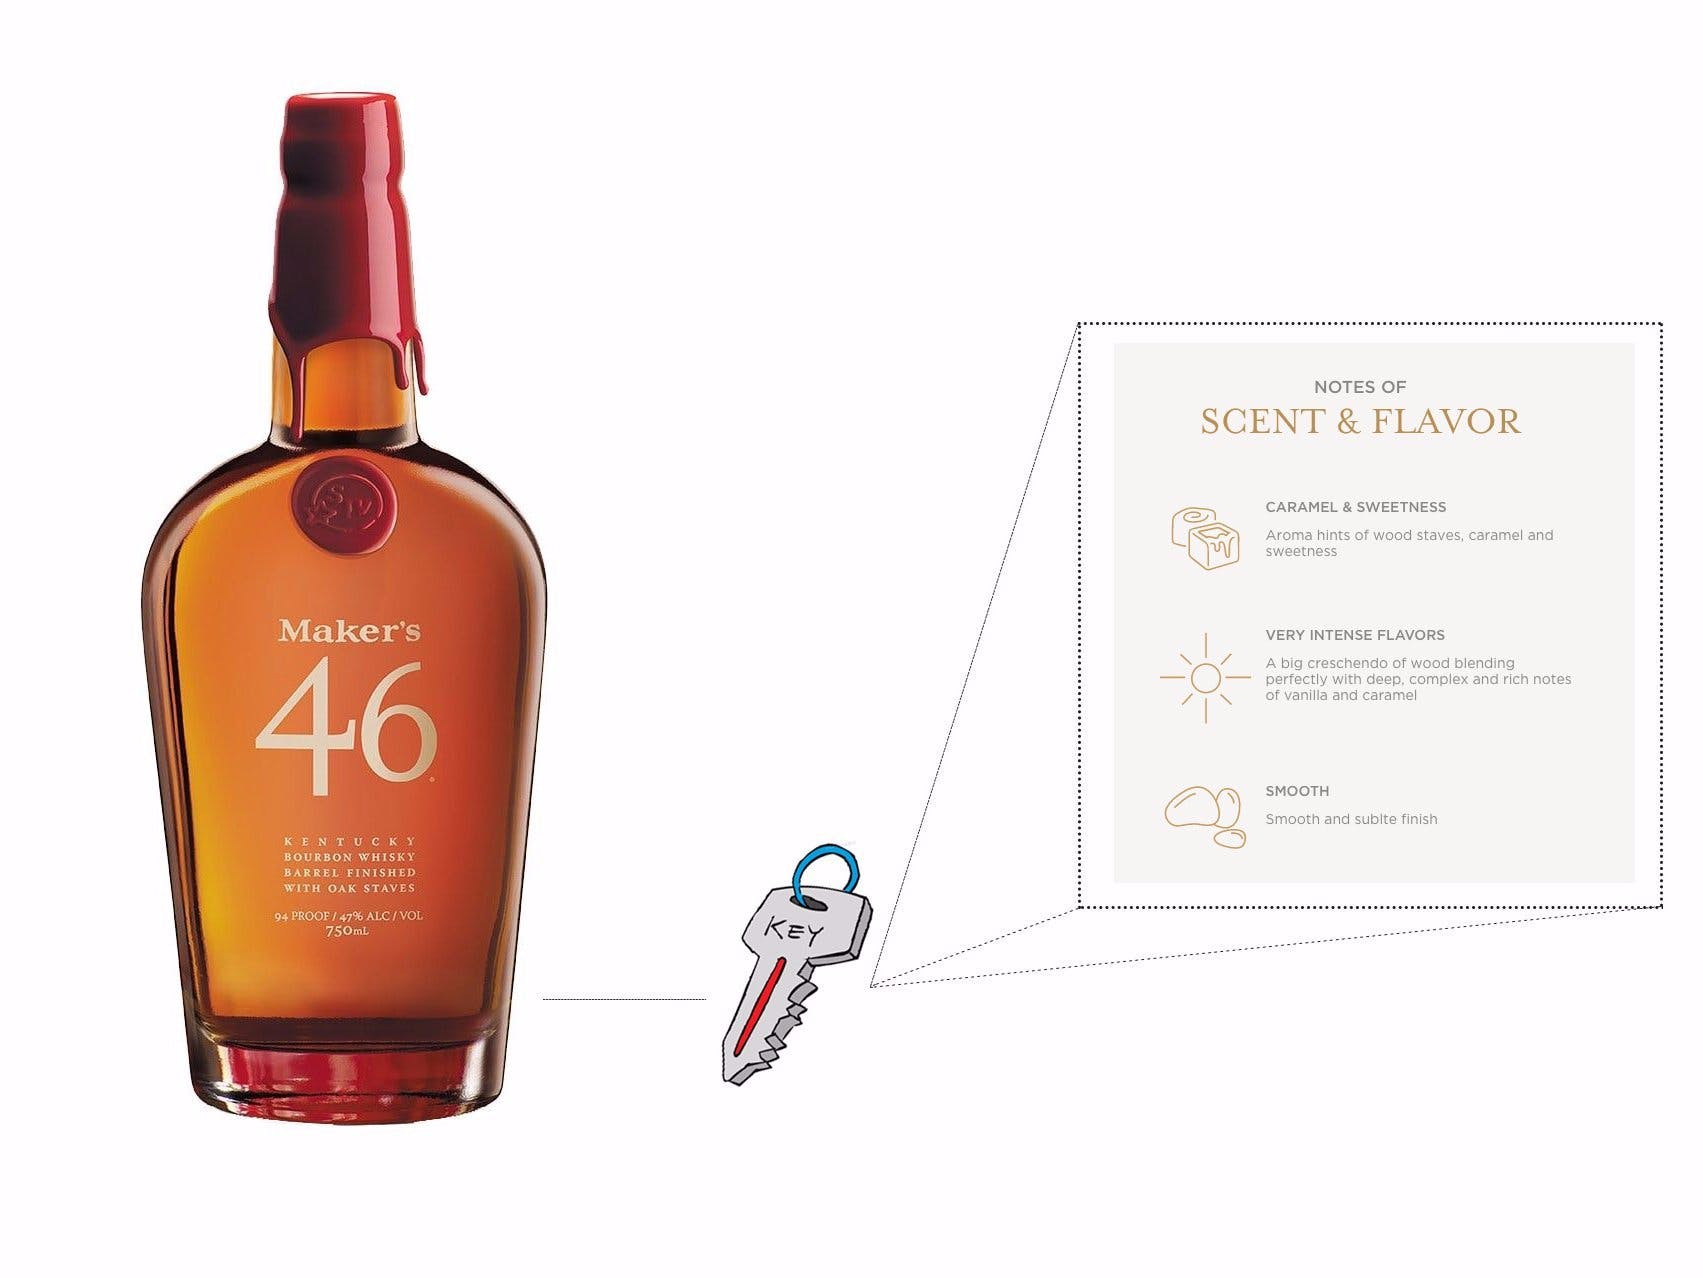 A smart key for detecting Whisky